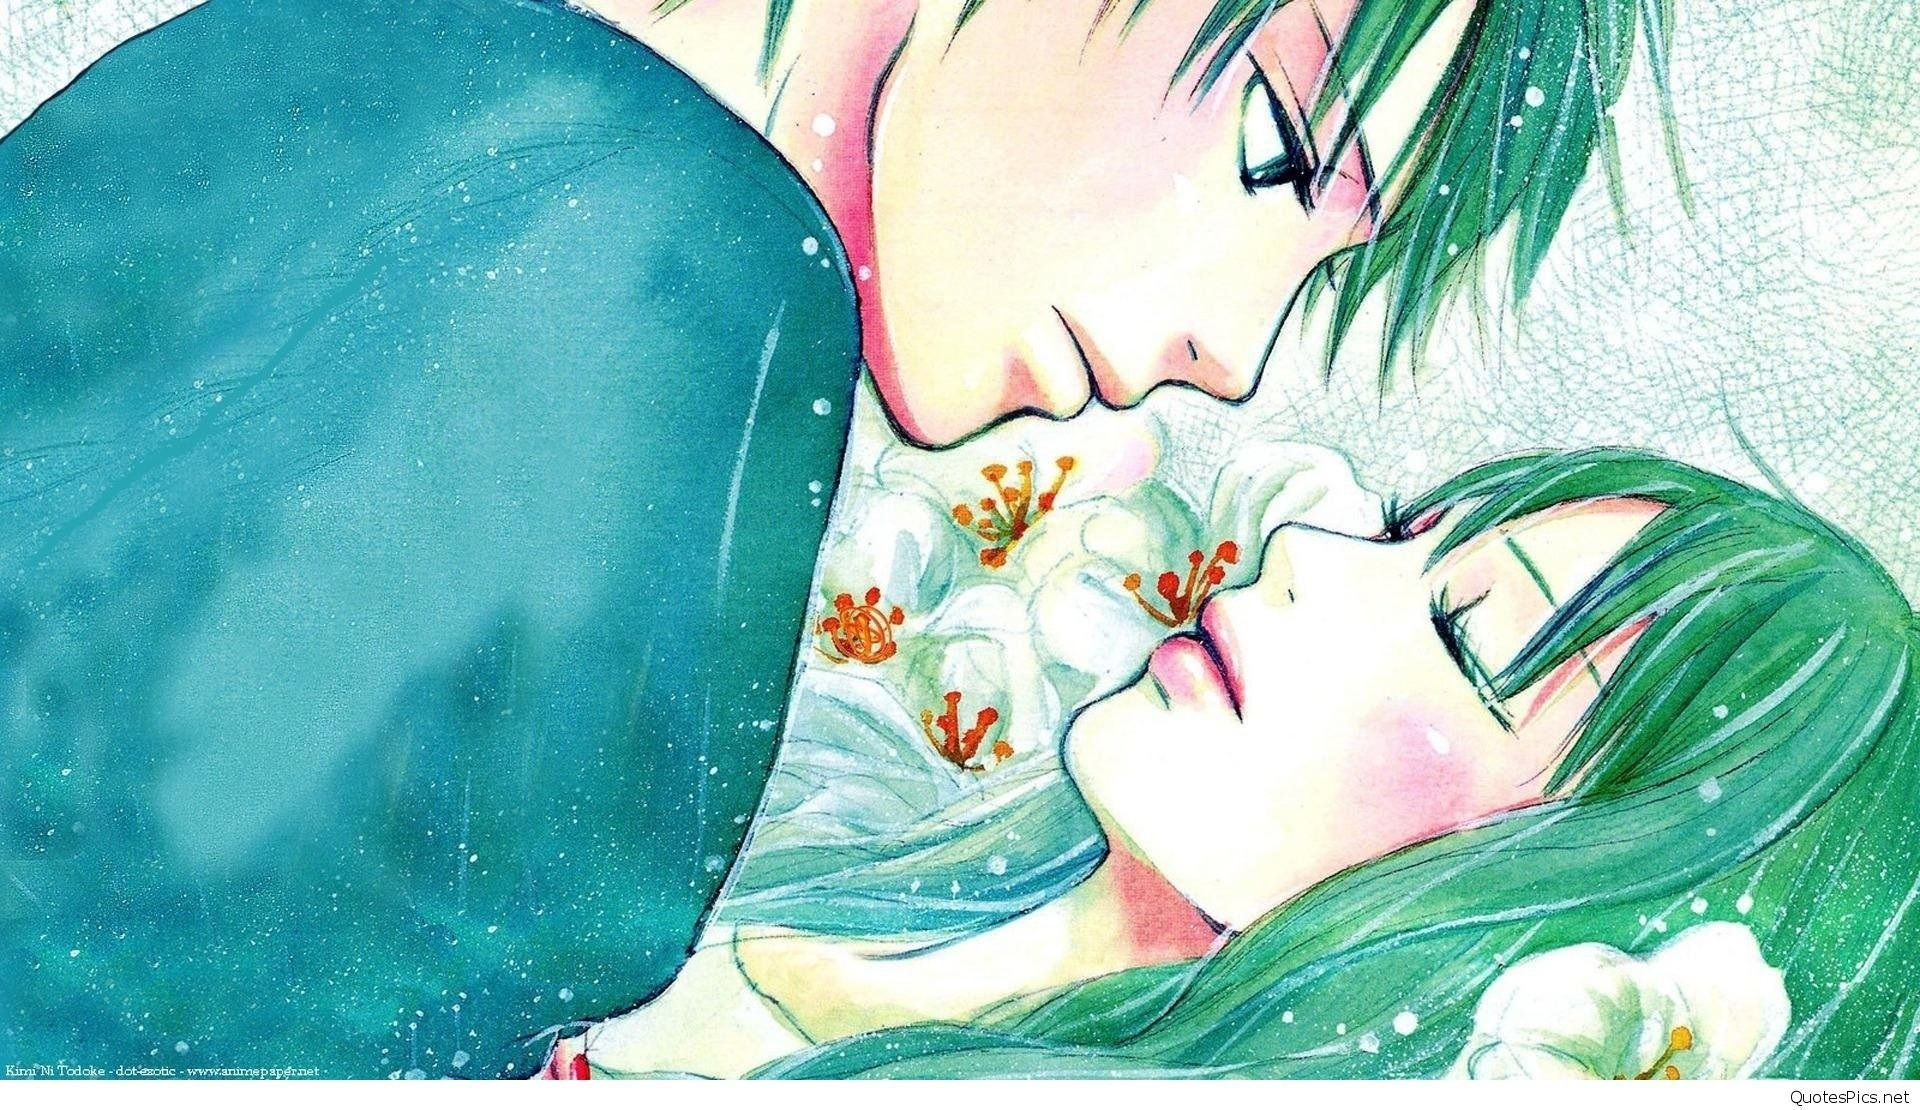 50 Love Couple Wallpapers 2017 2018: Anime Couple Wallpaper (74+ Images